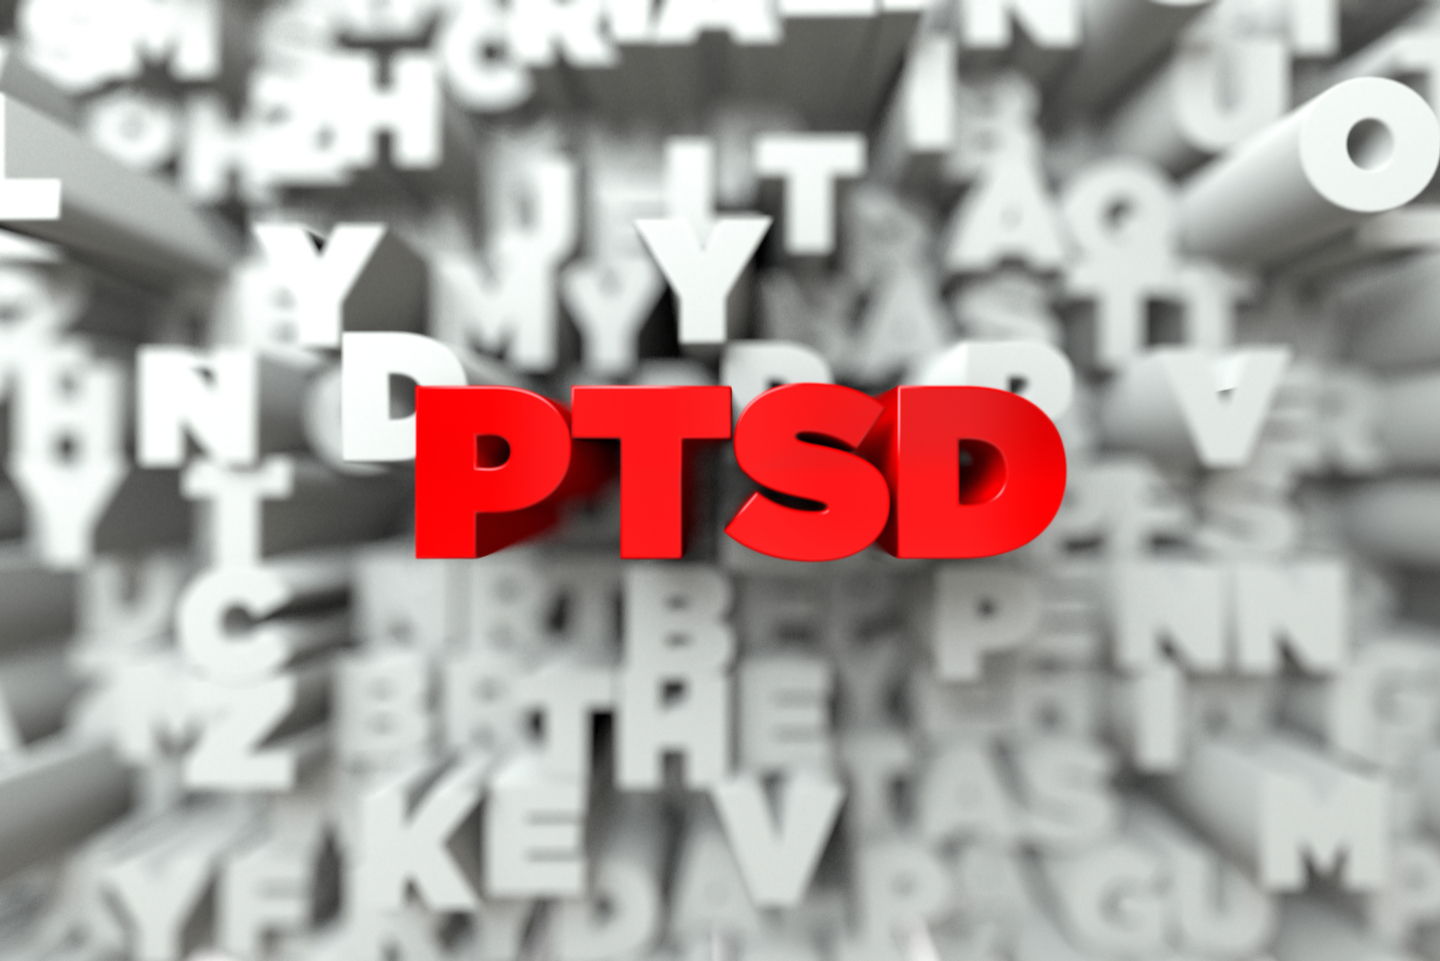 ptsd reliving trauma Trauma is in the past (can be fed back into reliving later) • provides retrieval cues for difficult to access parts of the memory, watch for new meanings emerging.